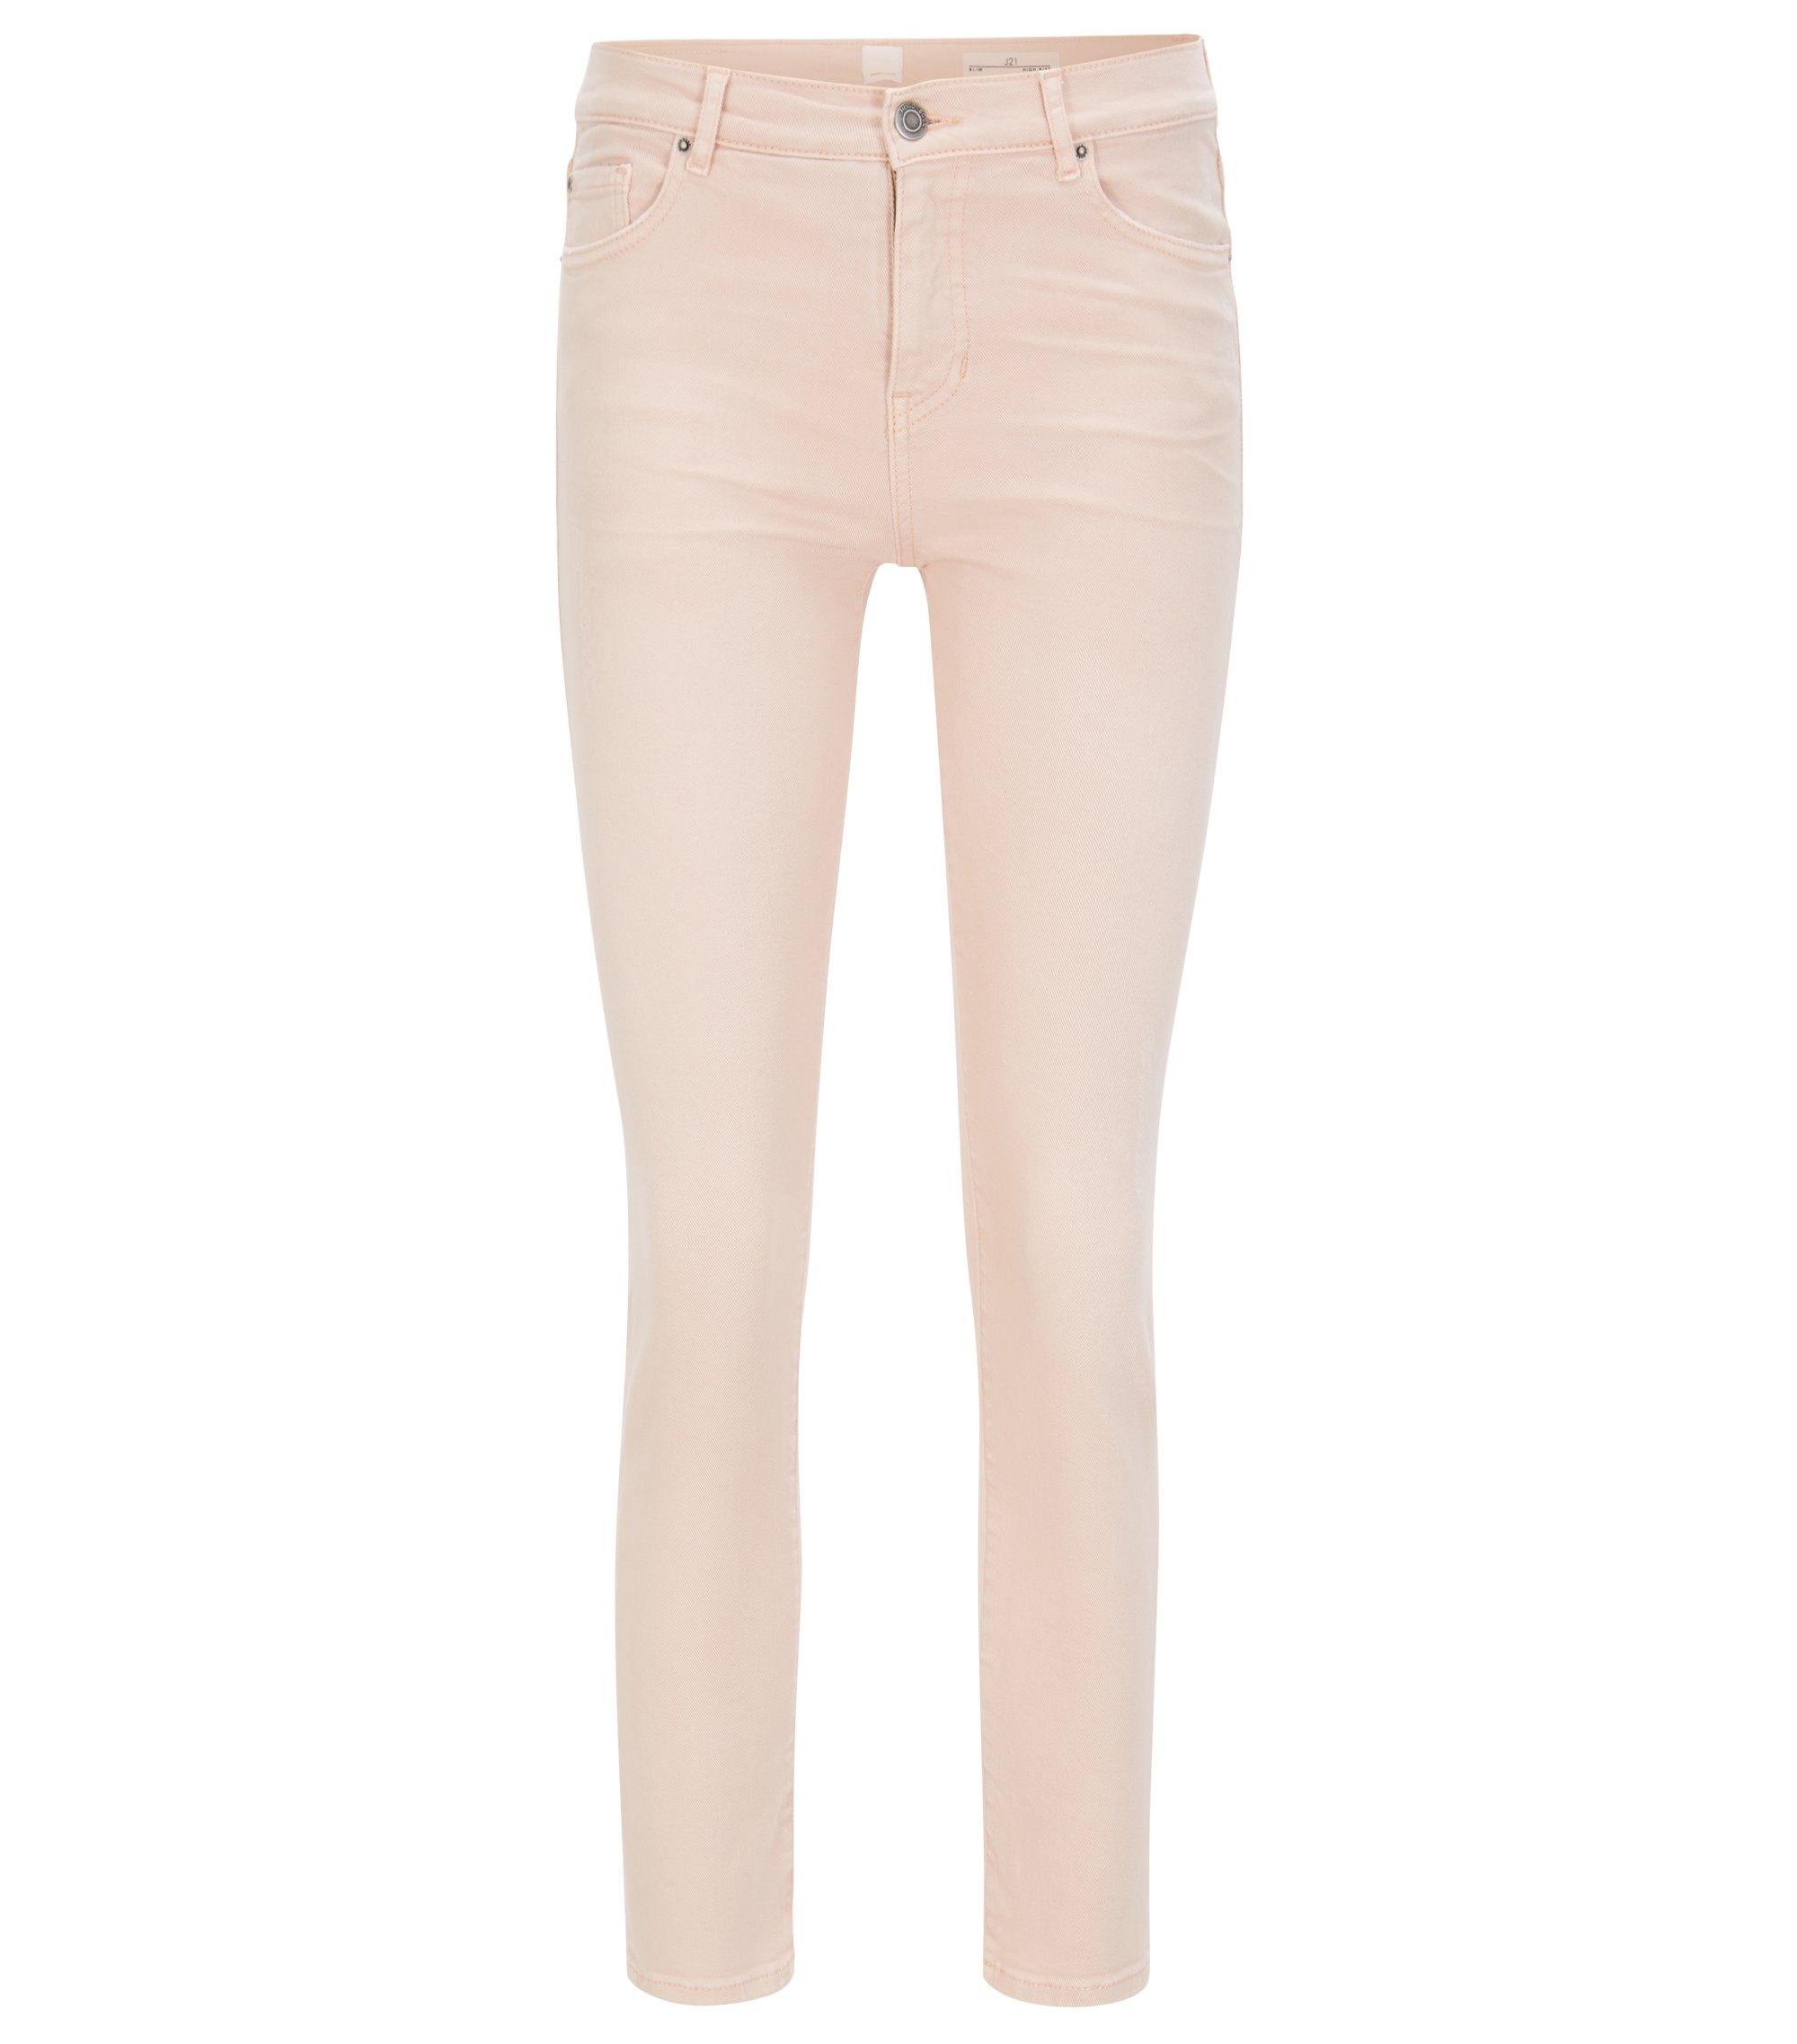 Slim-fit jeans in woven stretch denim, light pink